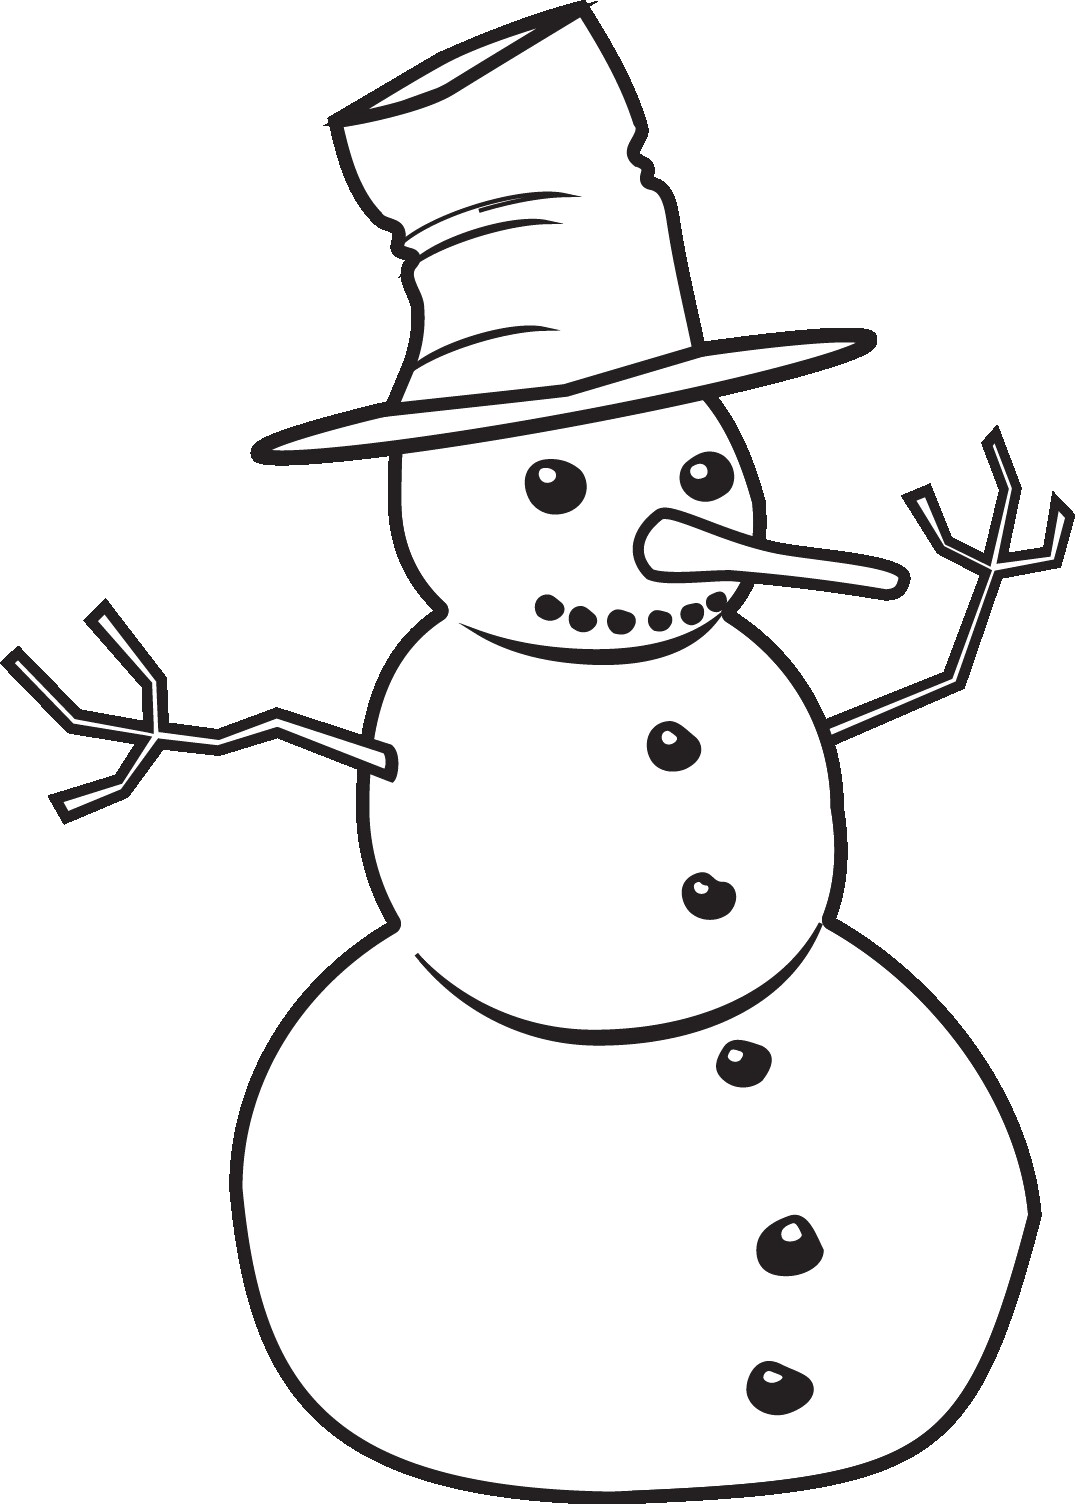 Snowman Free Cliparts Black Clip Art Noticeable Clipart And White.